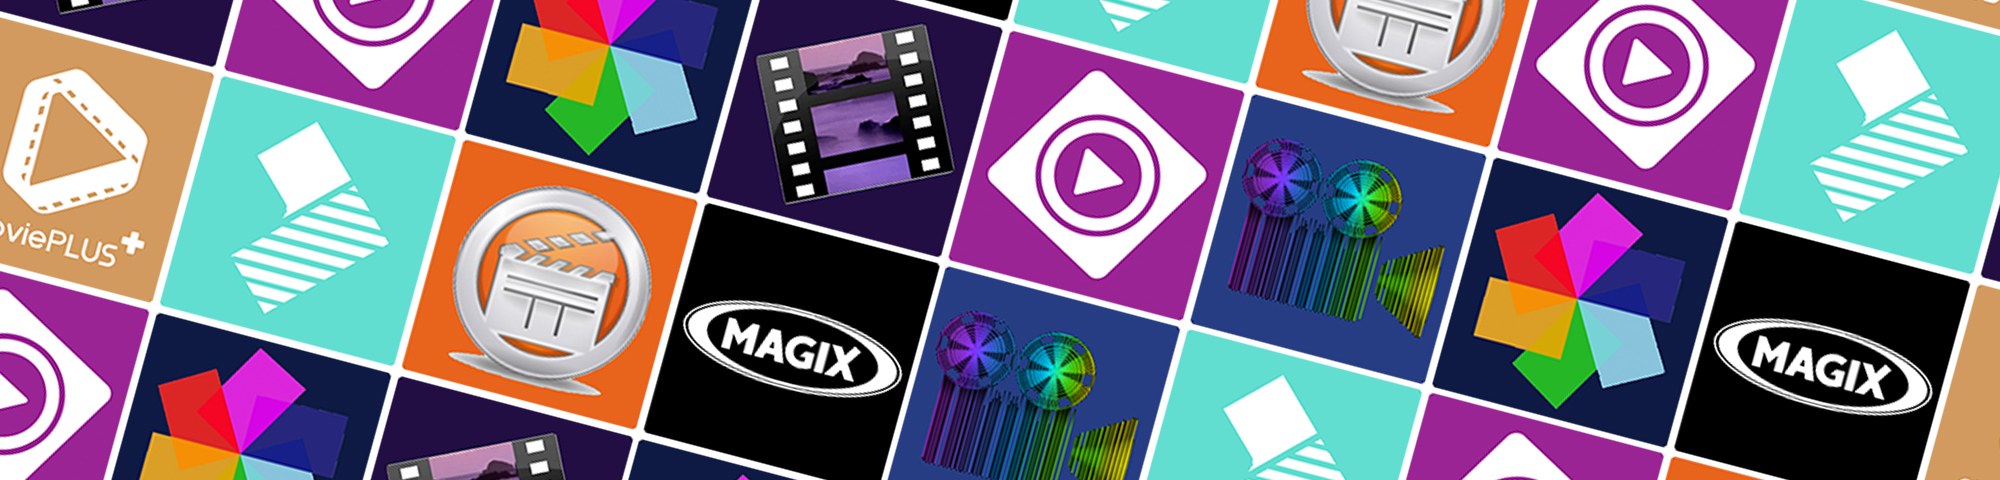 Best DVD Authoring Software of 2019 - Programs for Creating